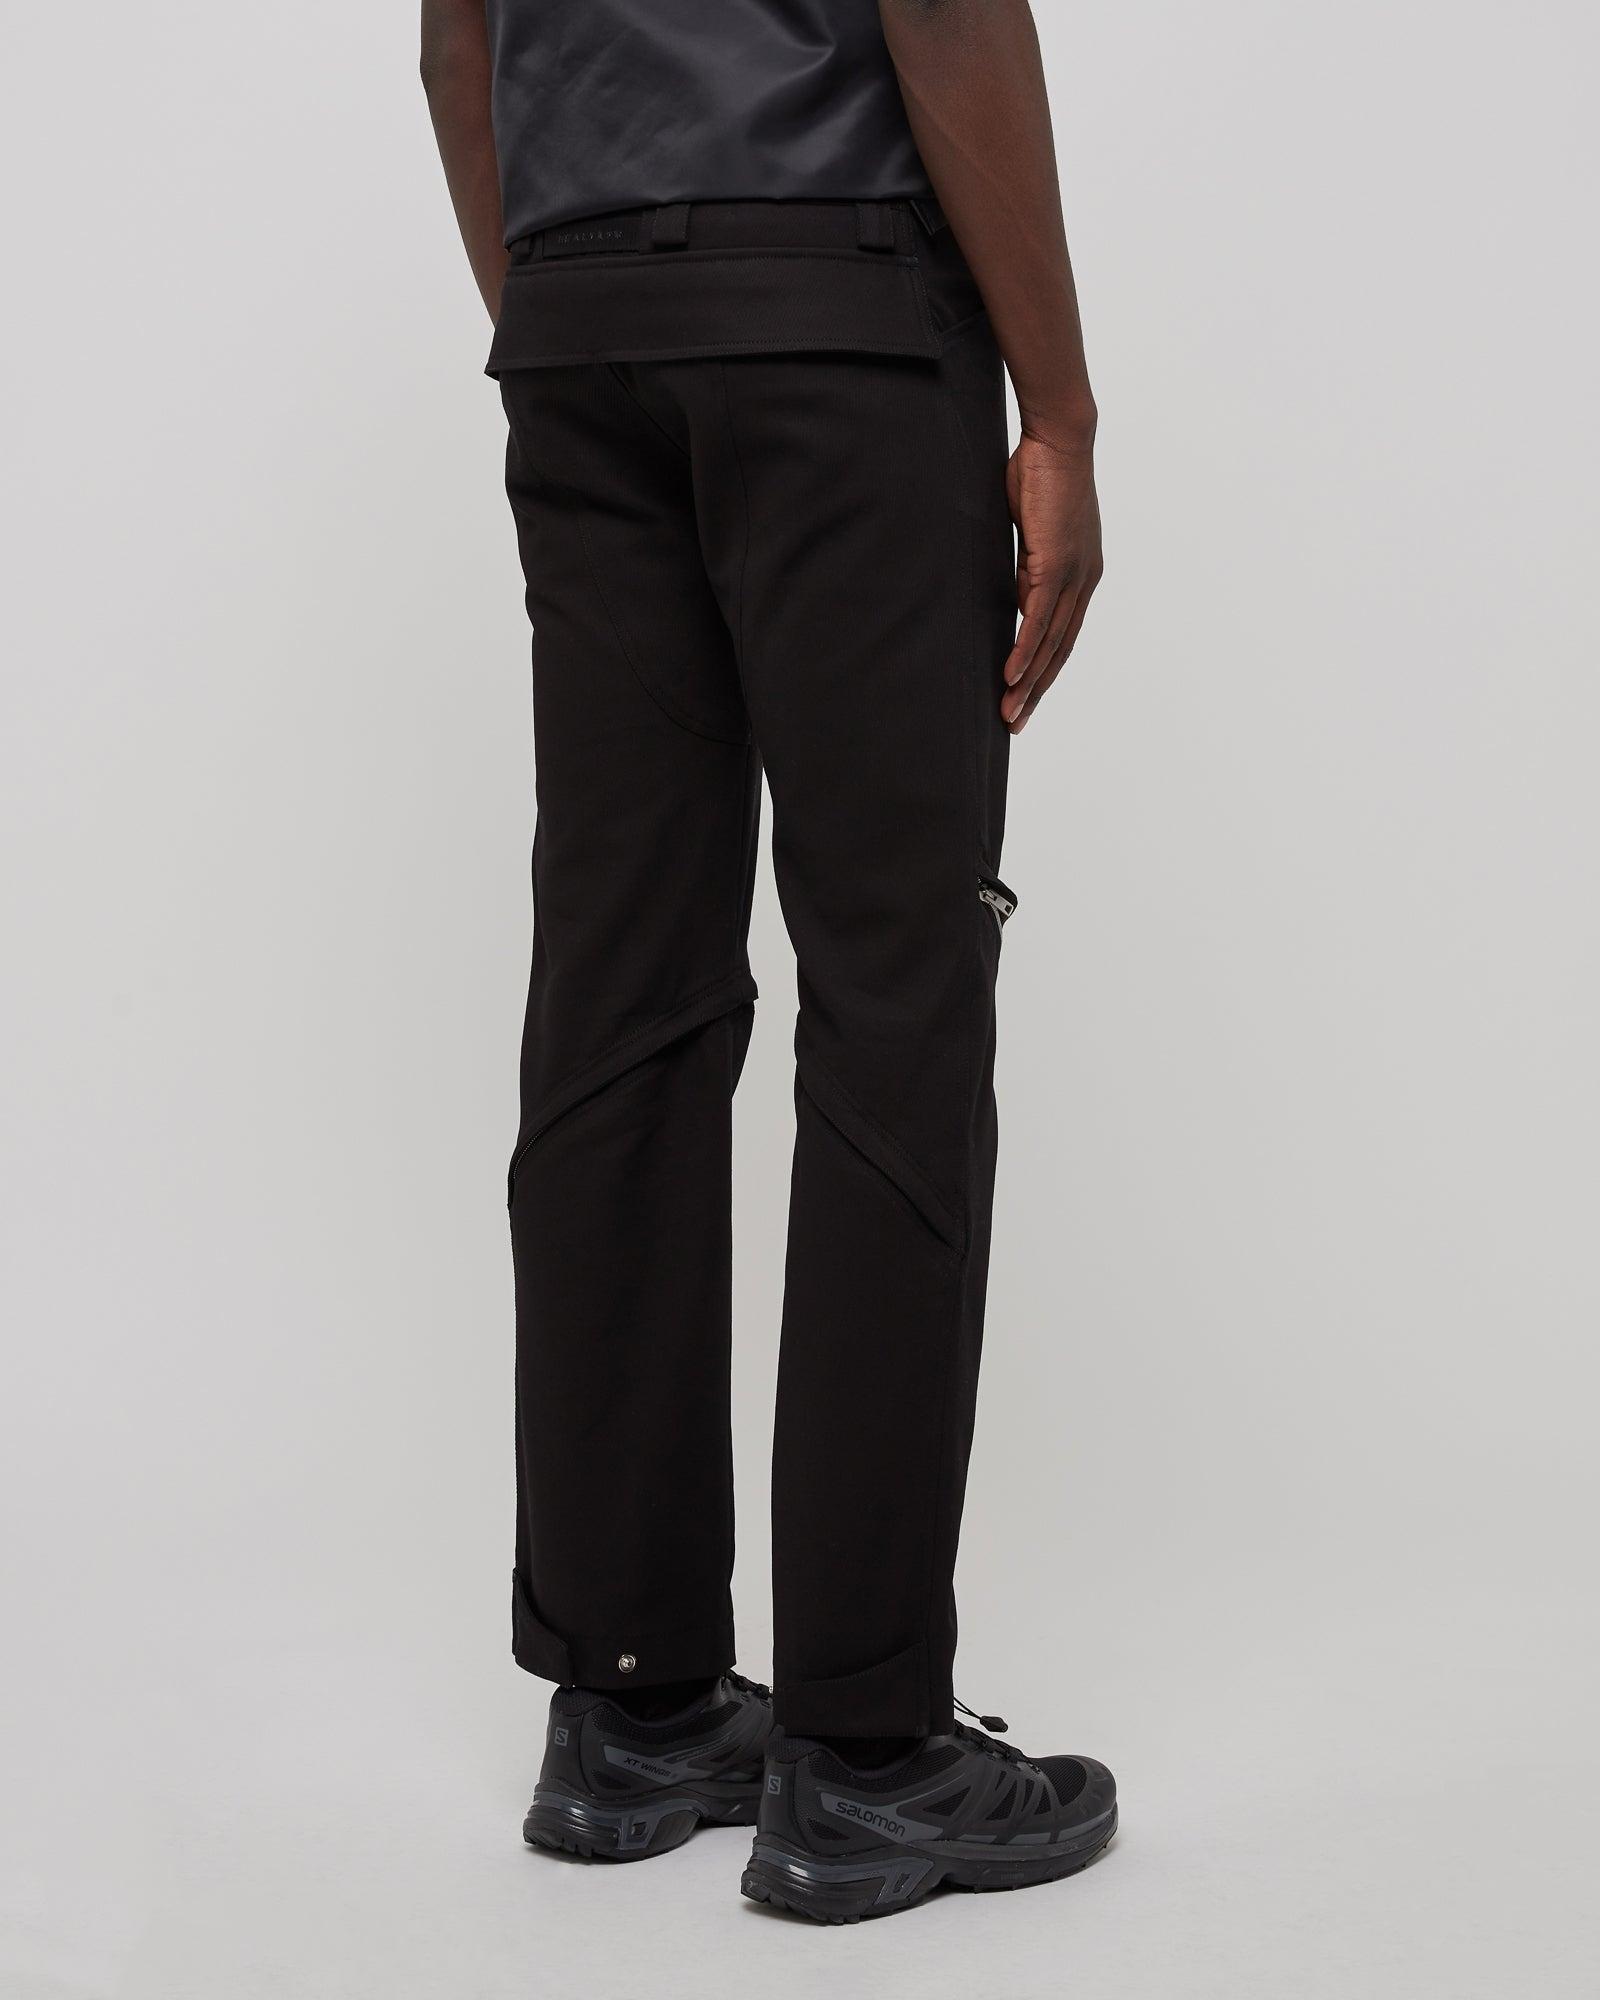 Crescent Zip Pant in Black